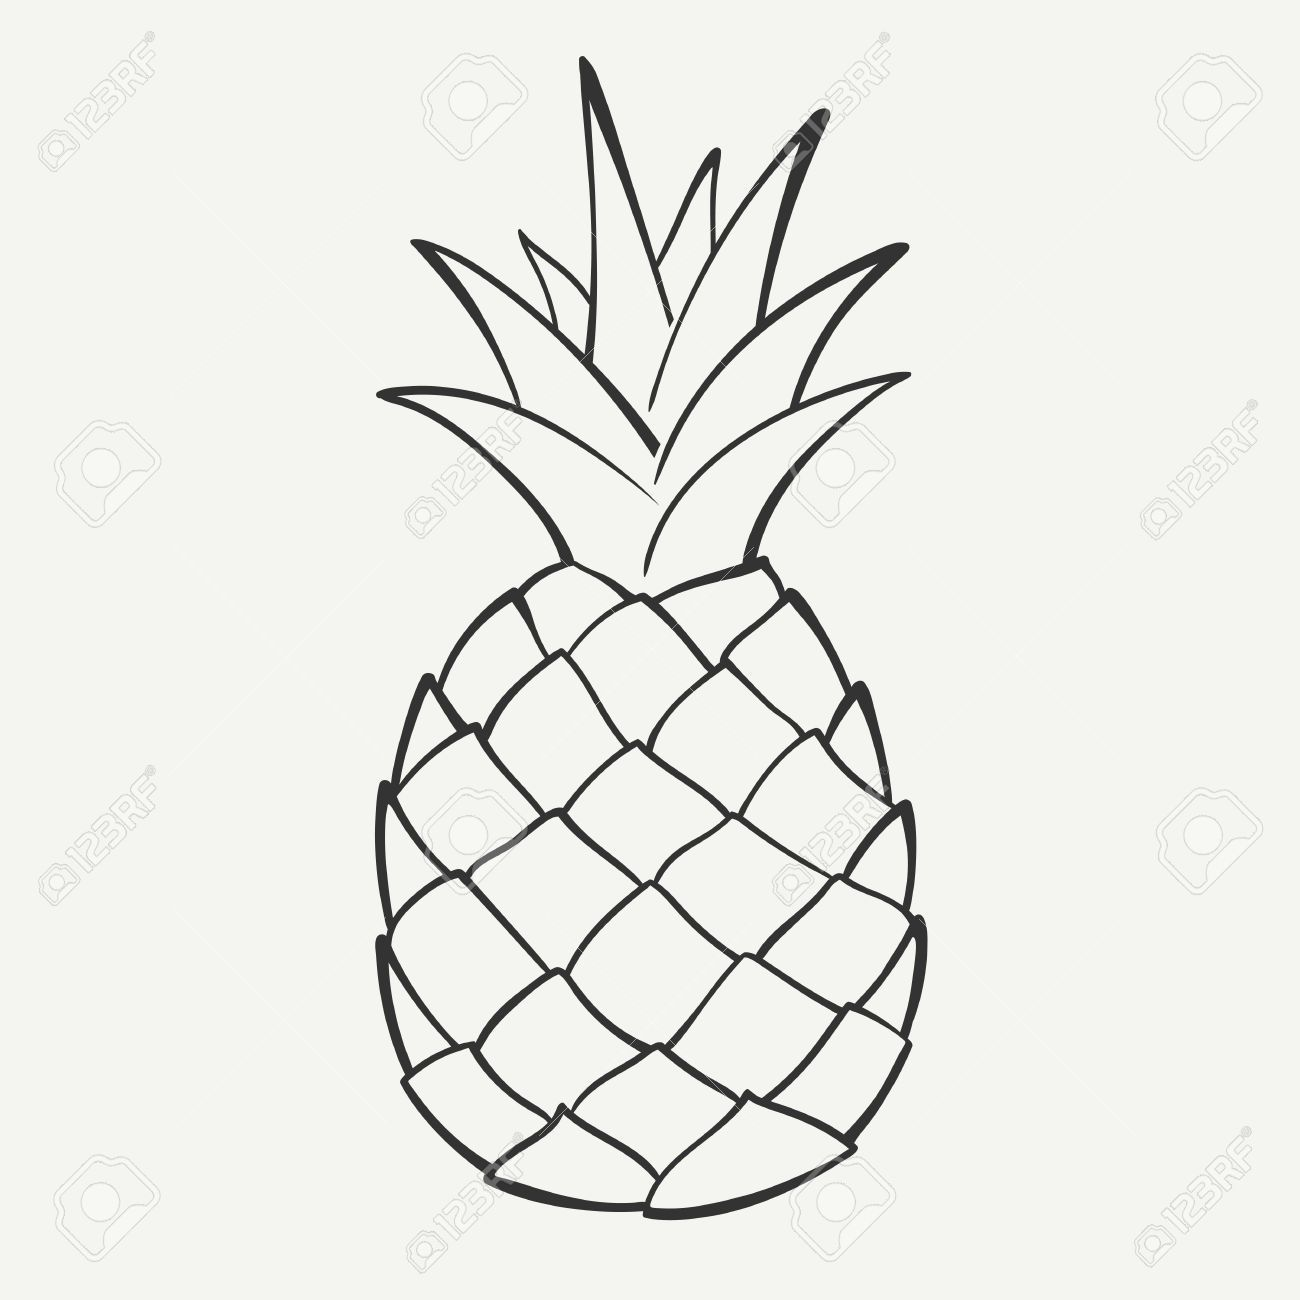 Outline Black And White Image Of A Pineapple Royalty Free Cliparts Vectors And Stock